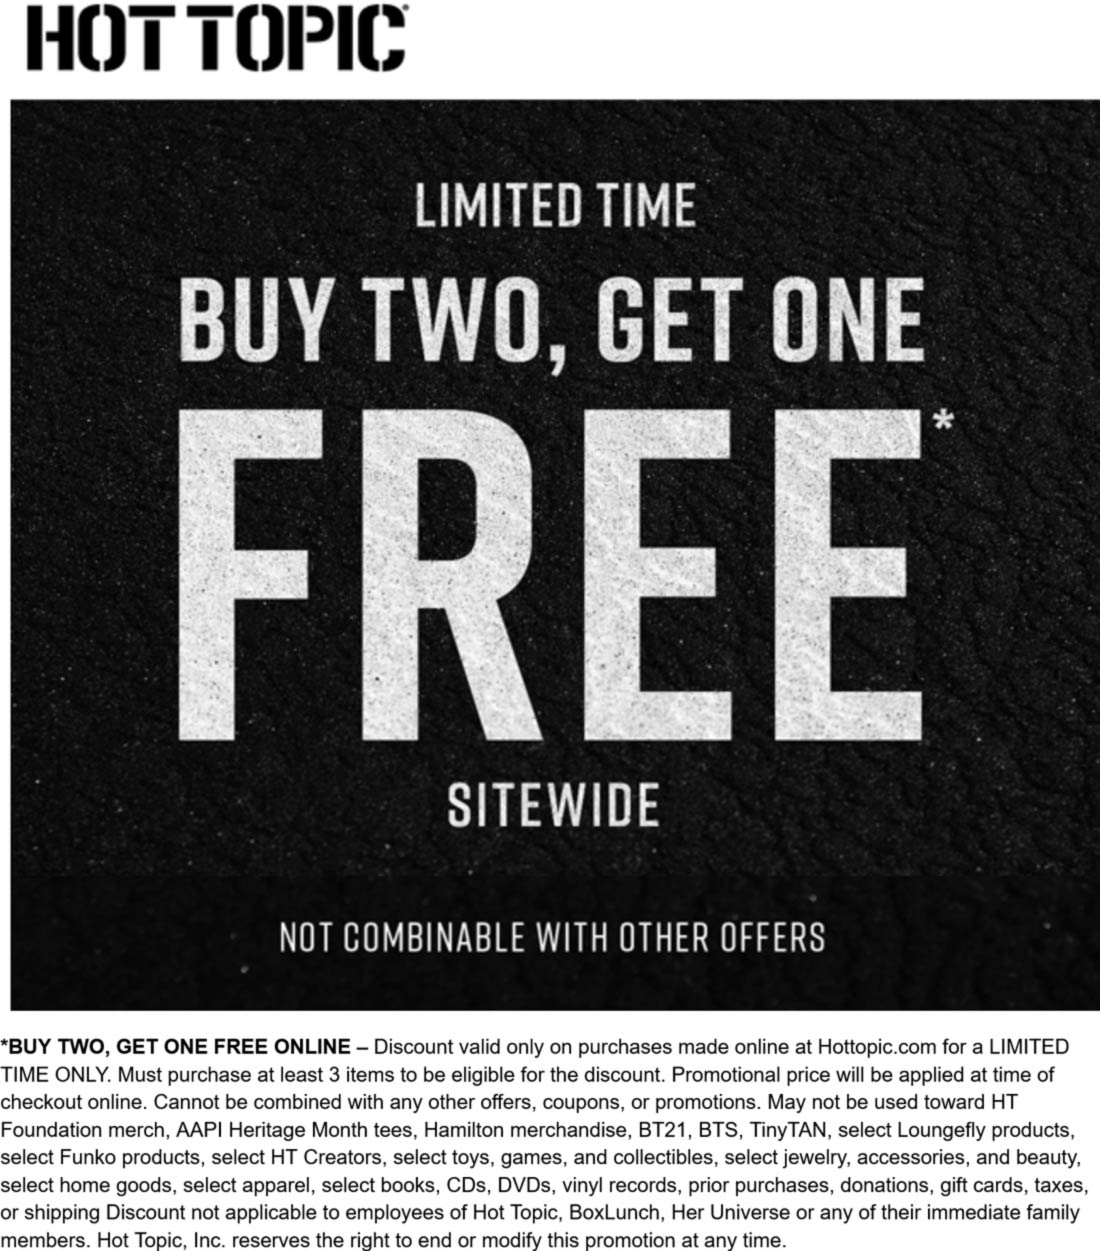 Hot Topic stores Coupon  3rd item free sitewide at Hot Topic #hottopic